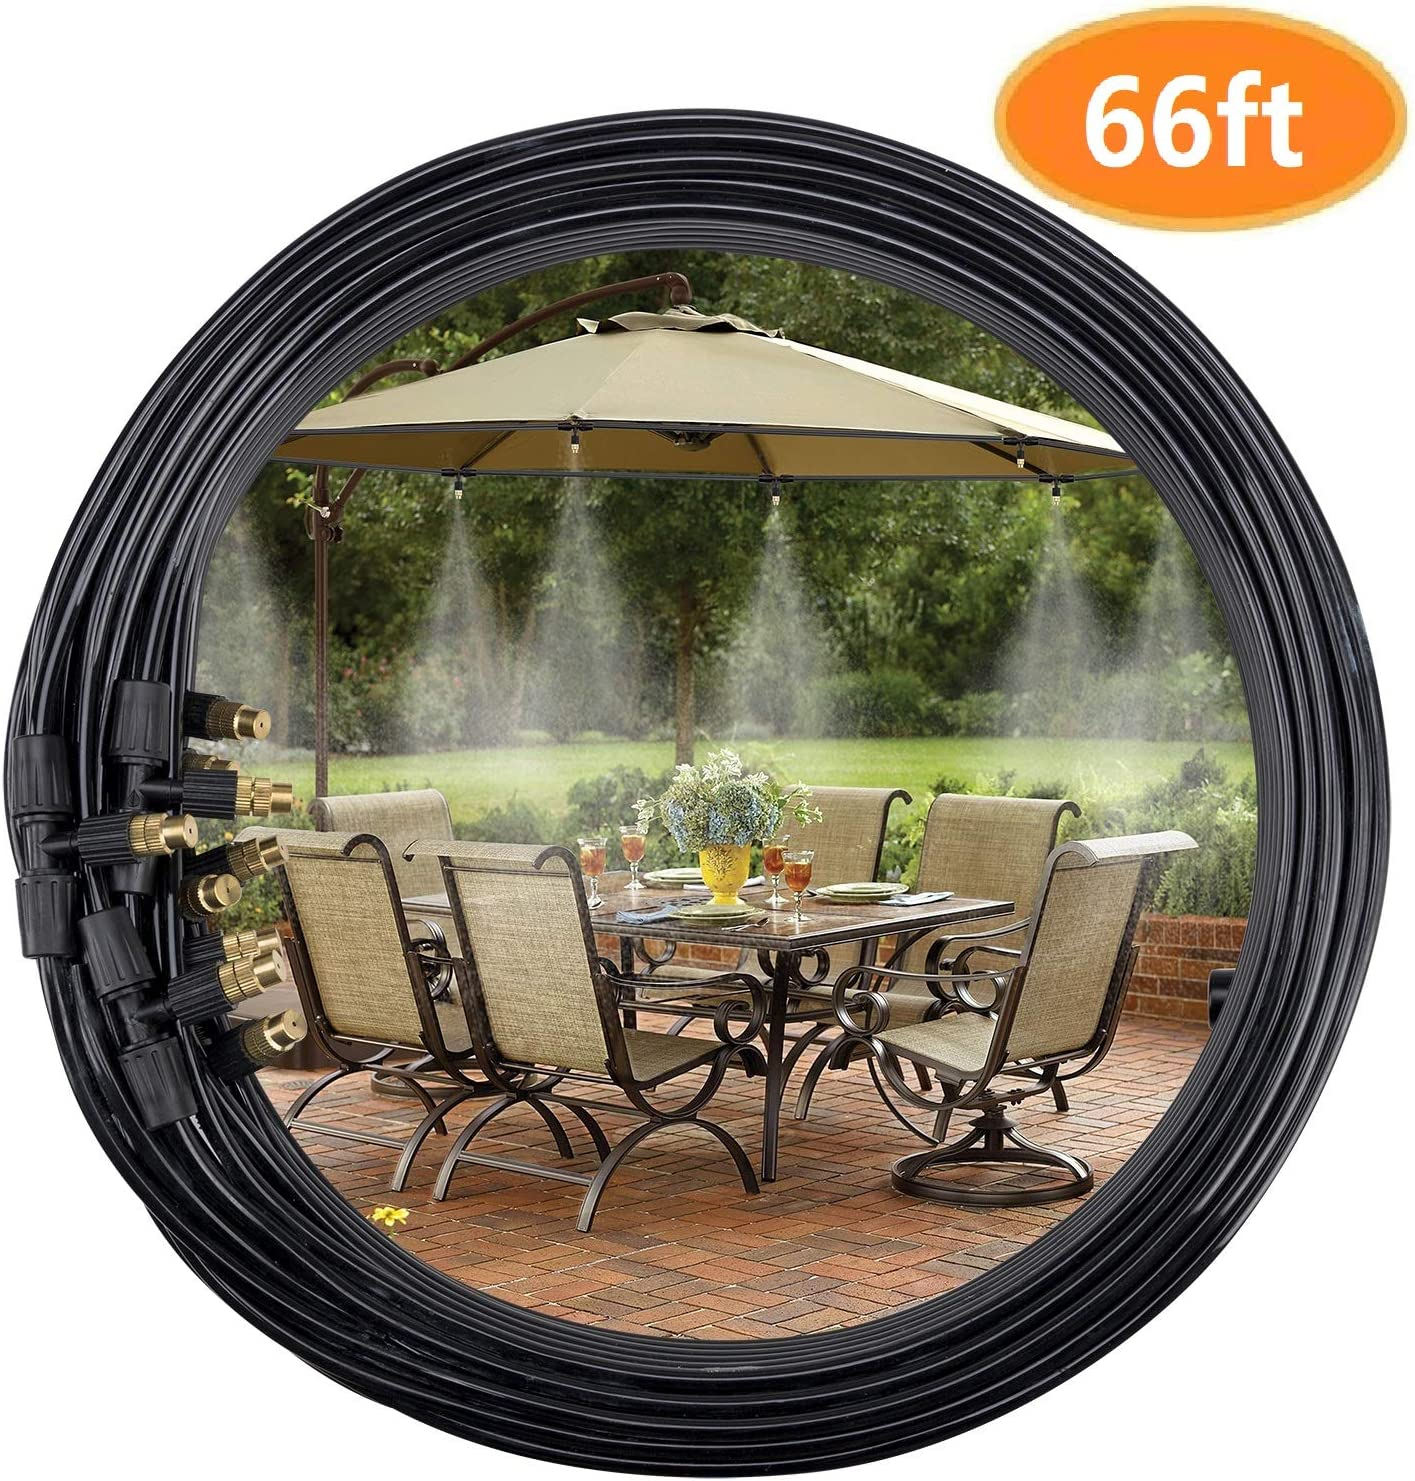 3//4 Misting Line 5 Copper Metal Mist Nozzles a Copper Metal Connector Fit to Any Outdoor Fan 6M Black Color VICKERT Outdoor Mist Cooling System Fan Kit for a Cool Patio Breeze 20FT